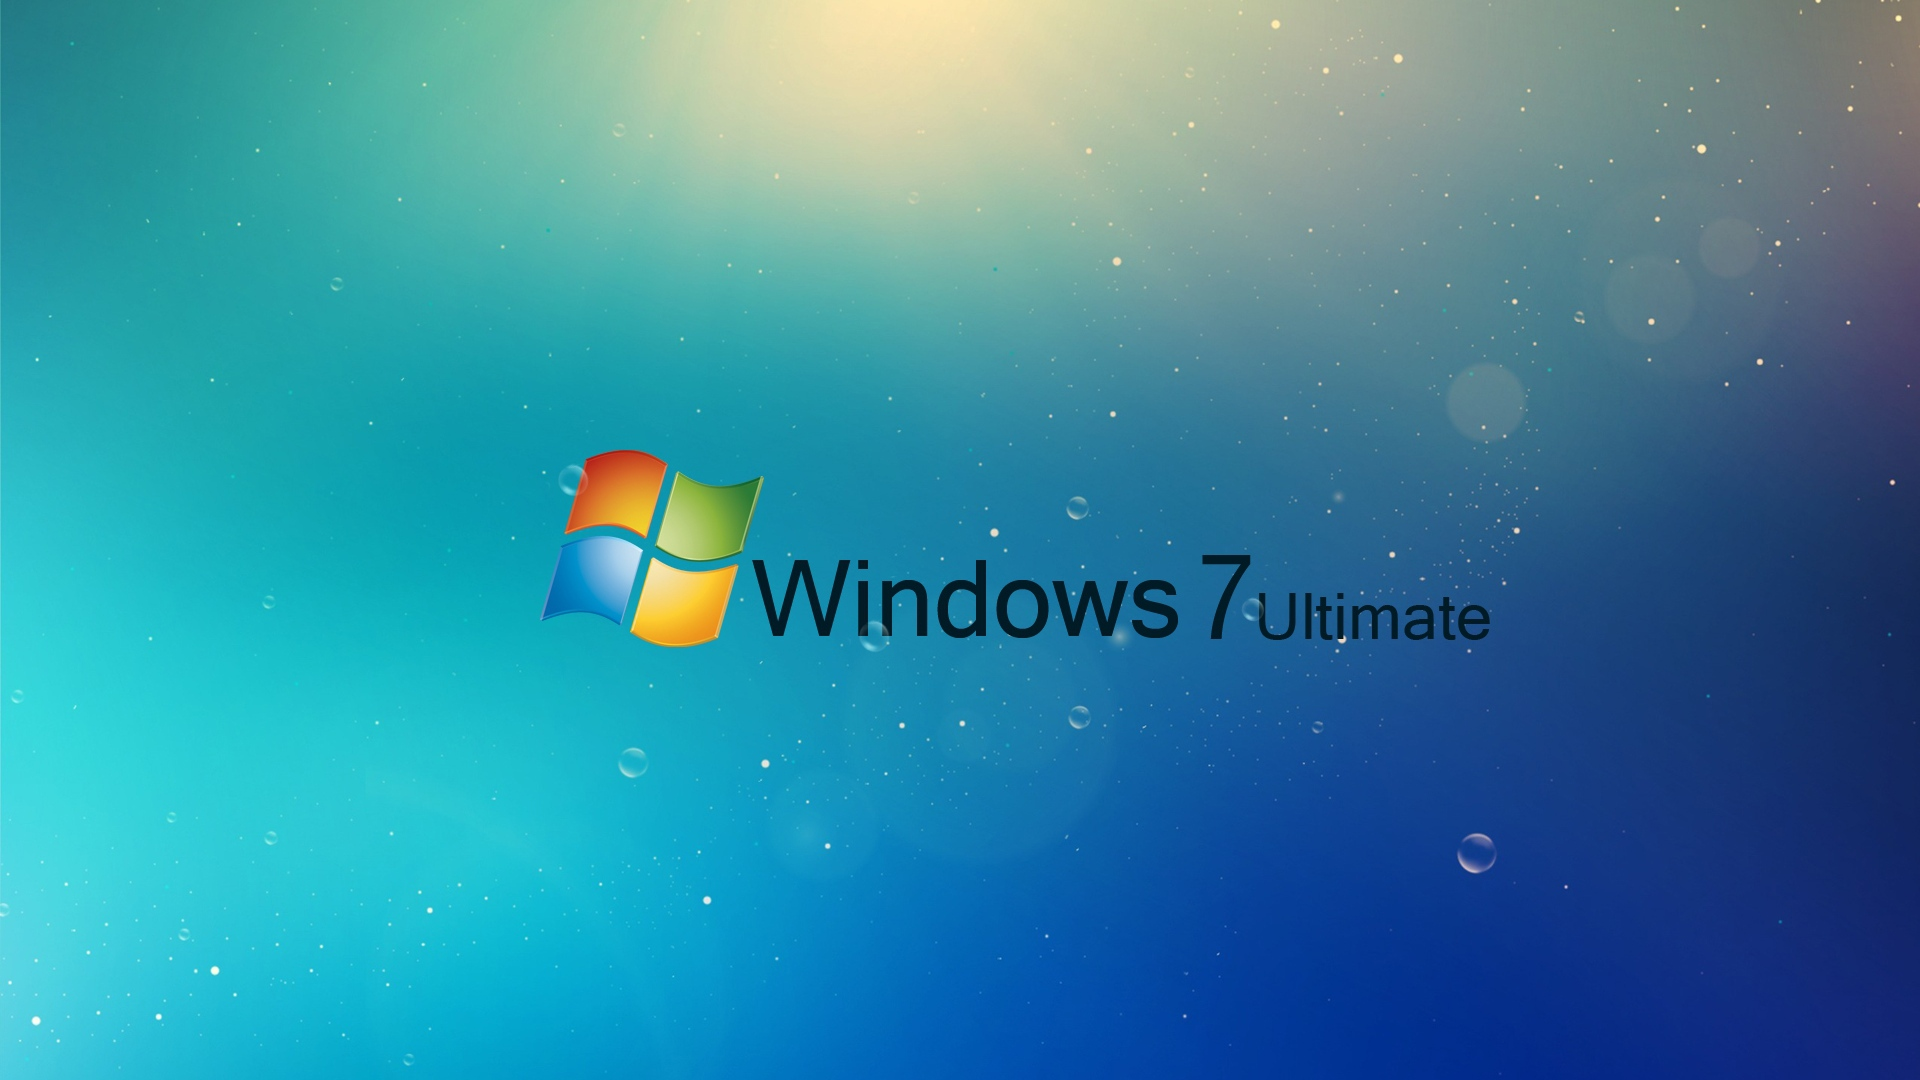 download wallpaper 1920x1080 windows 7, ultimate, blue, drops full